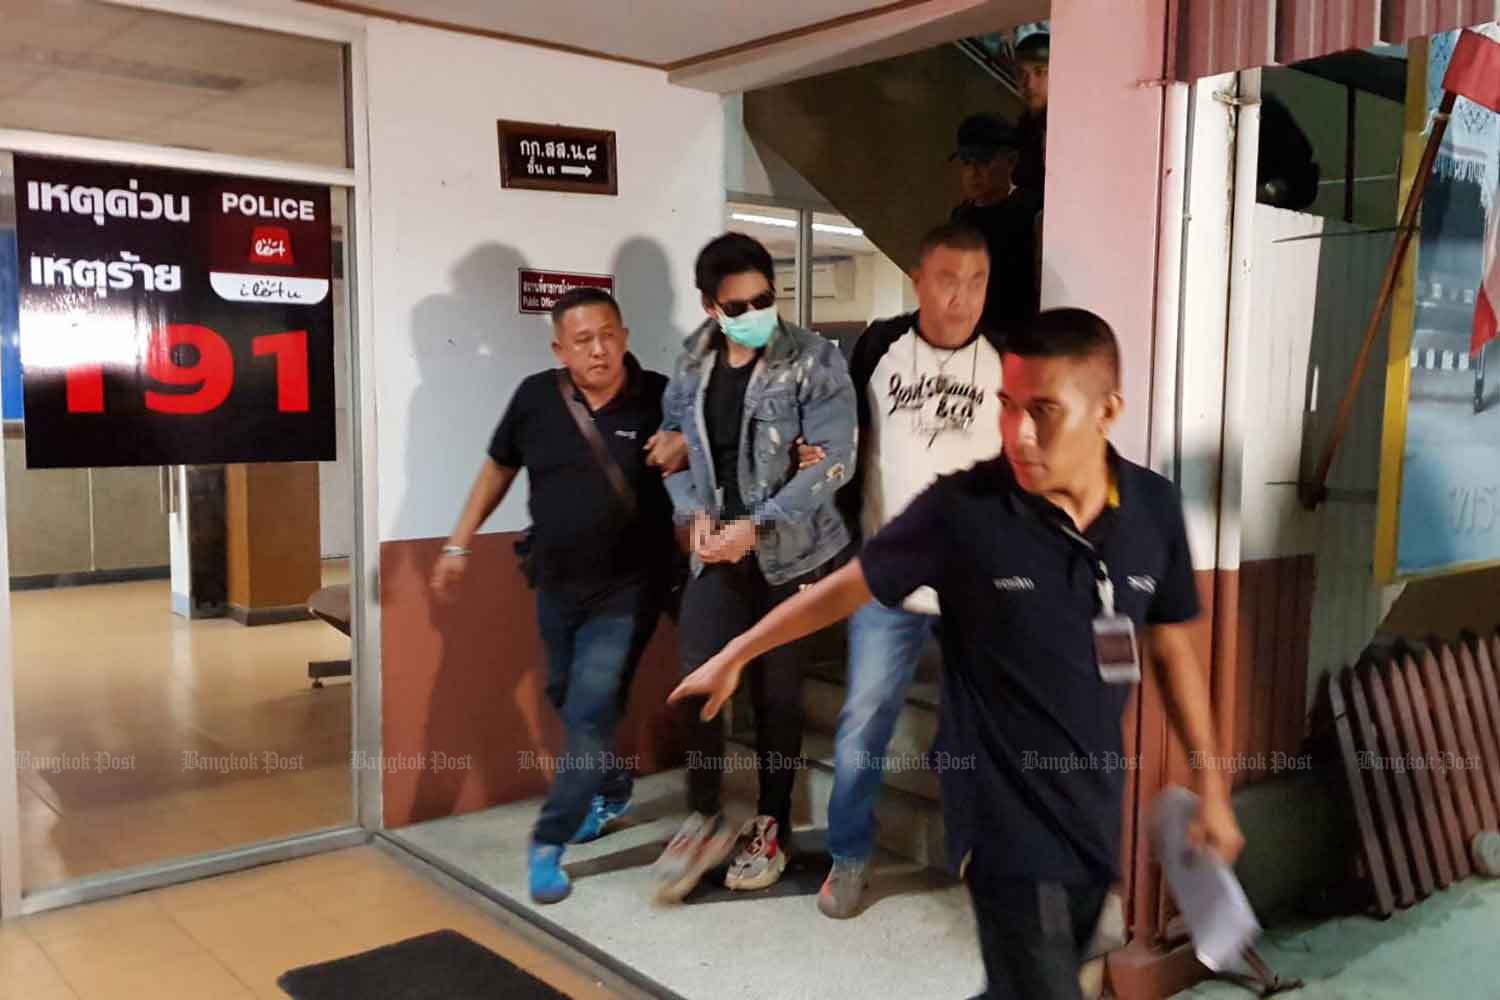 Police escort Rachadech Wongtabutr, 25, into a room at Metropolitan Police Division 8 in Bangkok early Wednesday morning after his arrest in relation to the death of product presenter Thitima